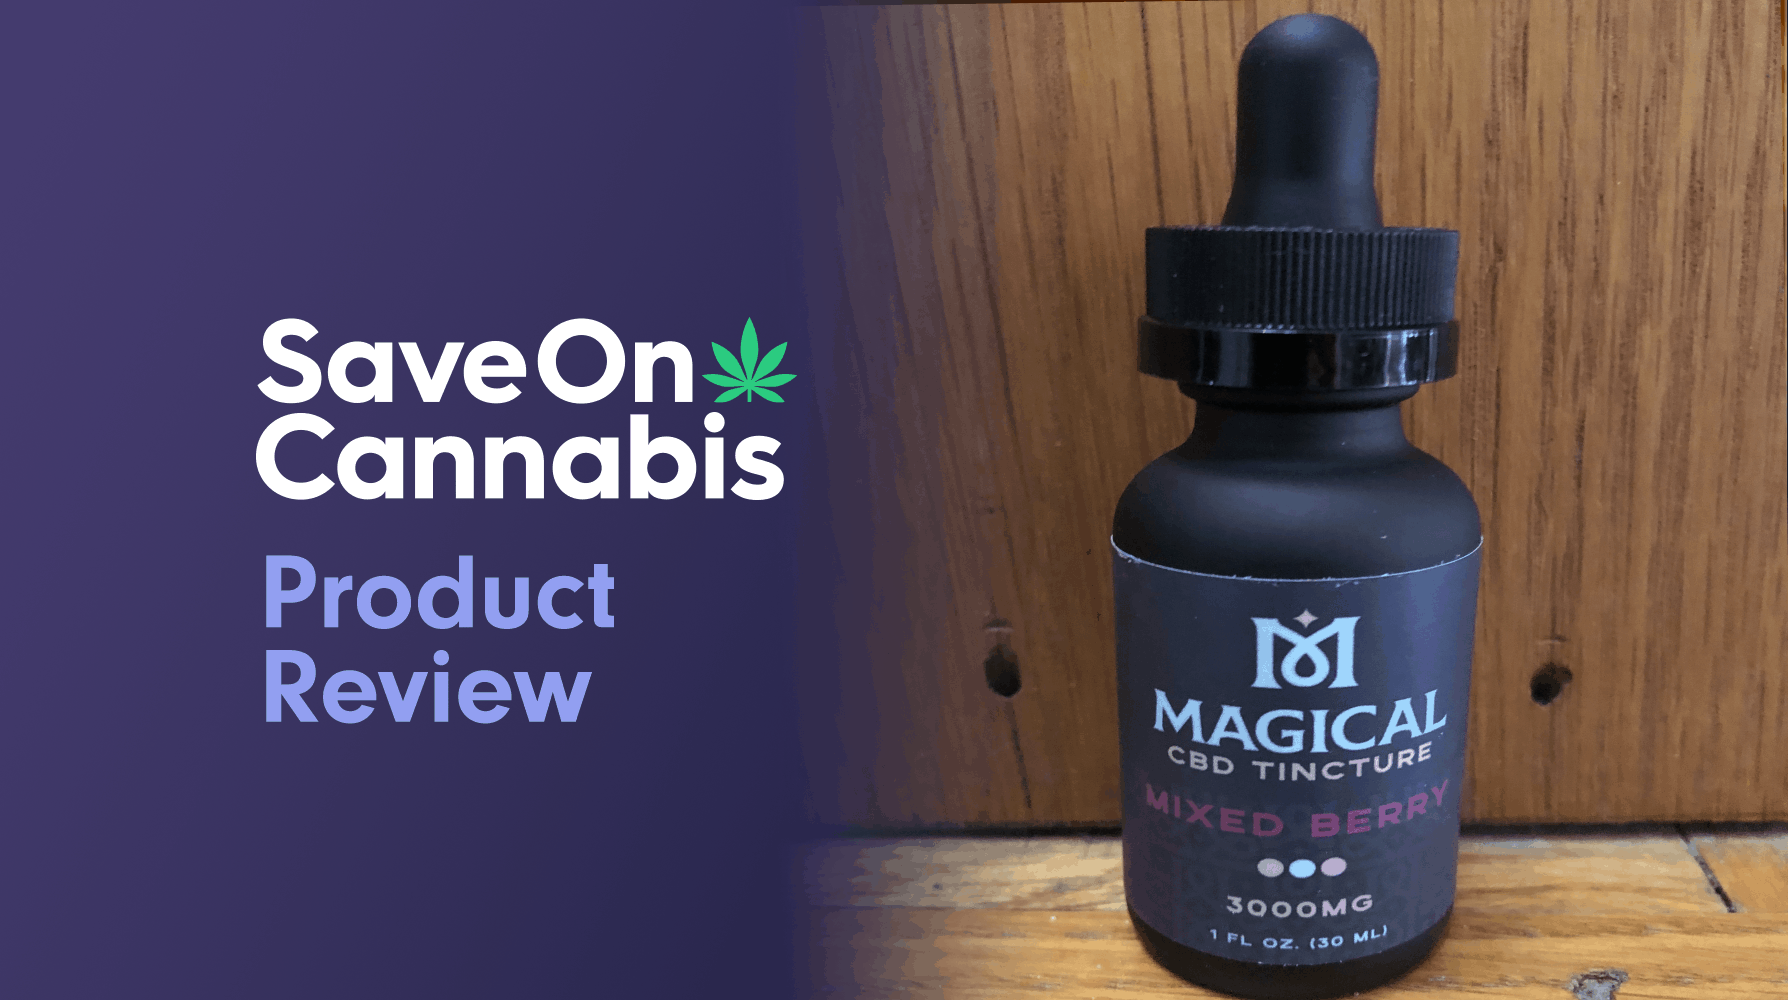 Magical CBD Tincture Mixed Berry 300 MG Save On Cannabis Review Website